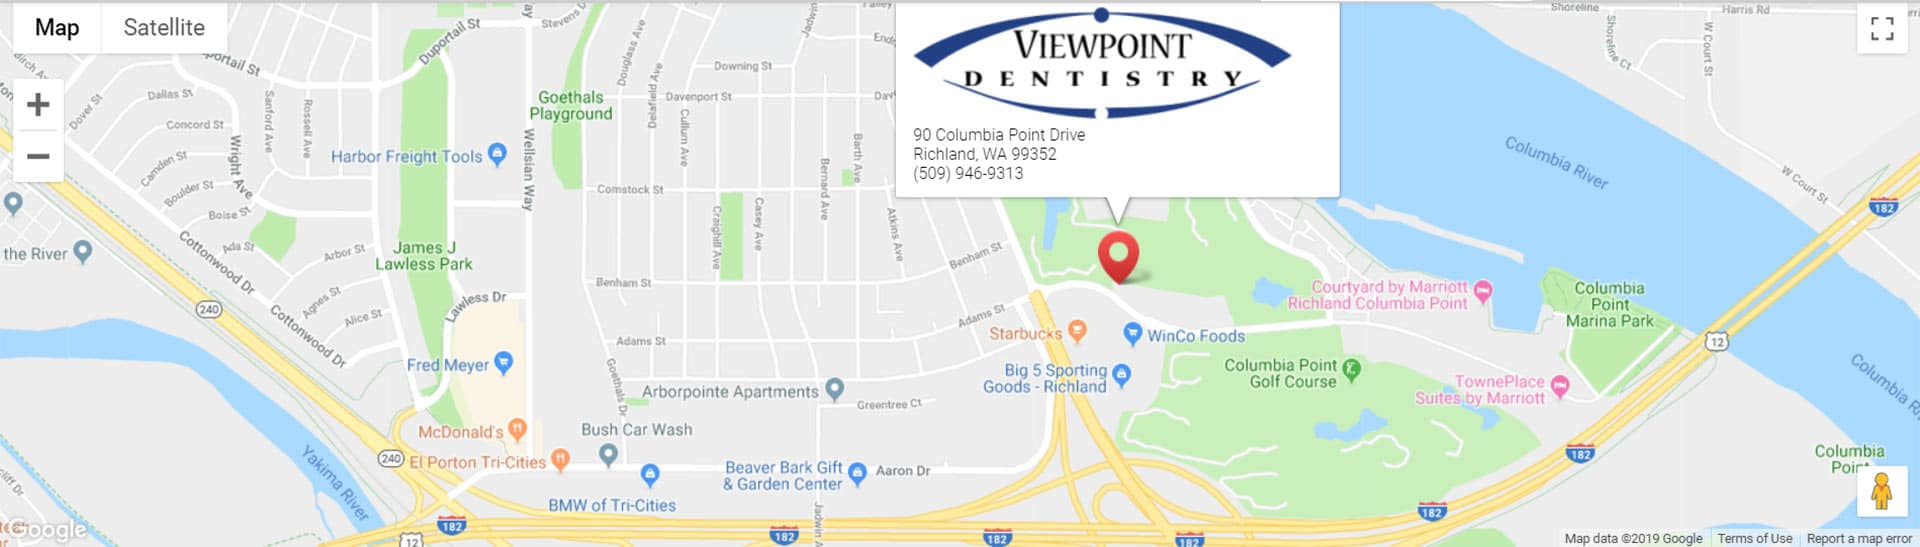 Map of location of Viewpoint Dentistry